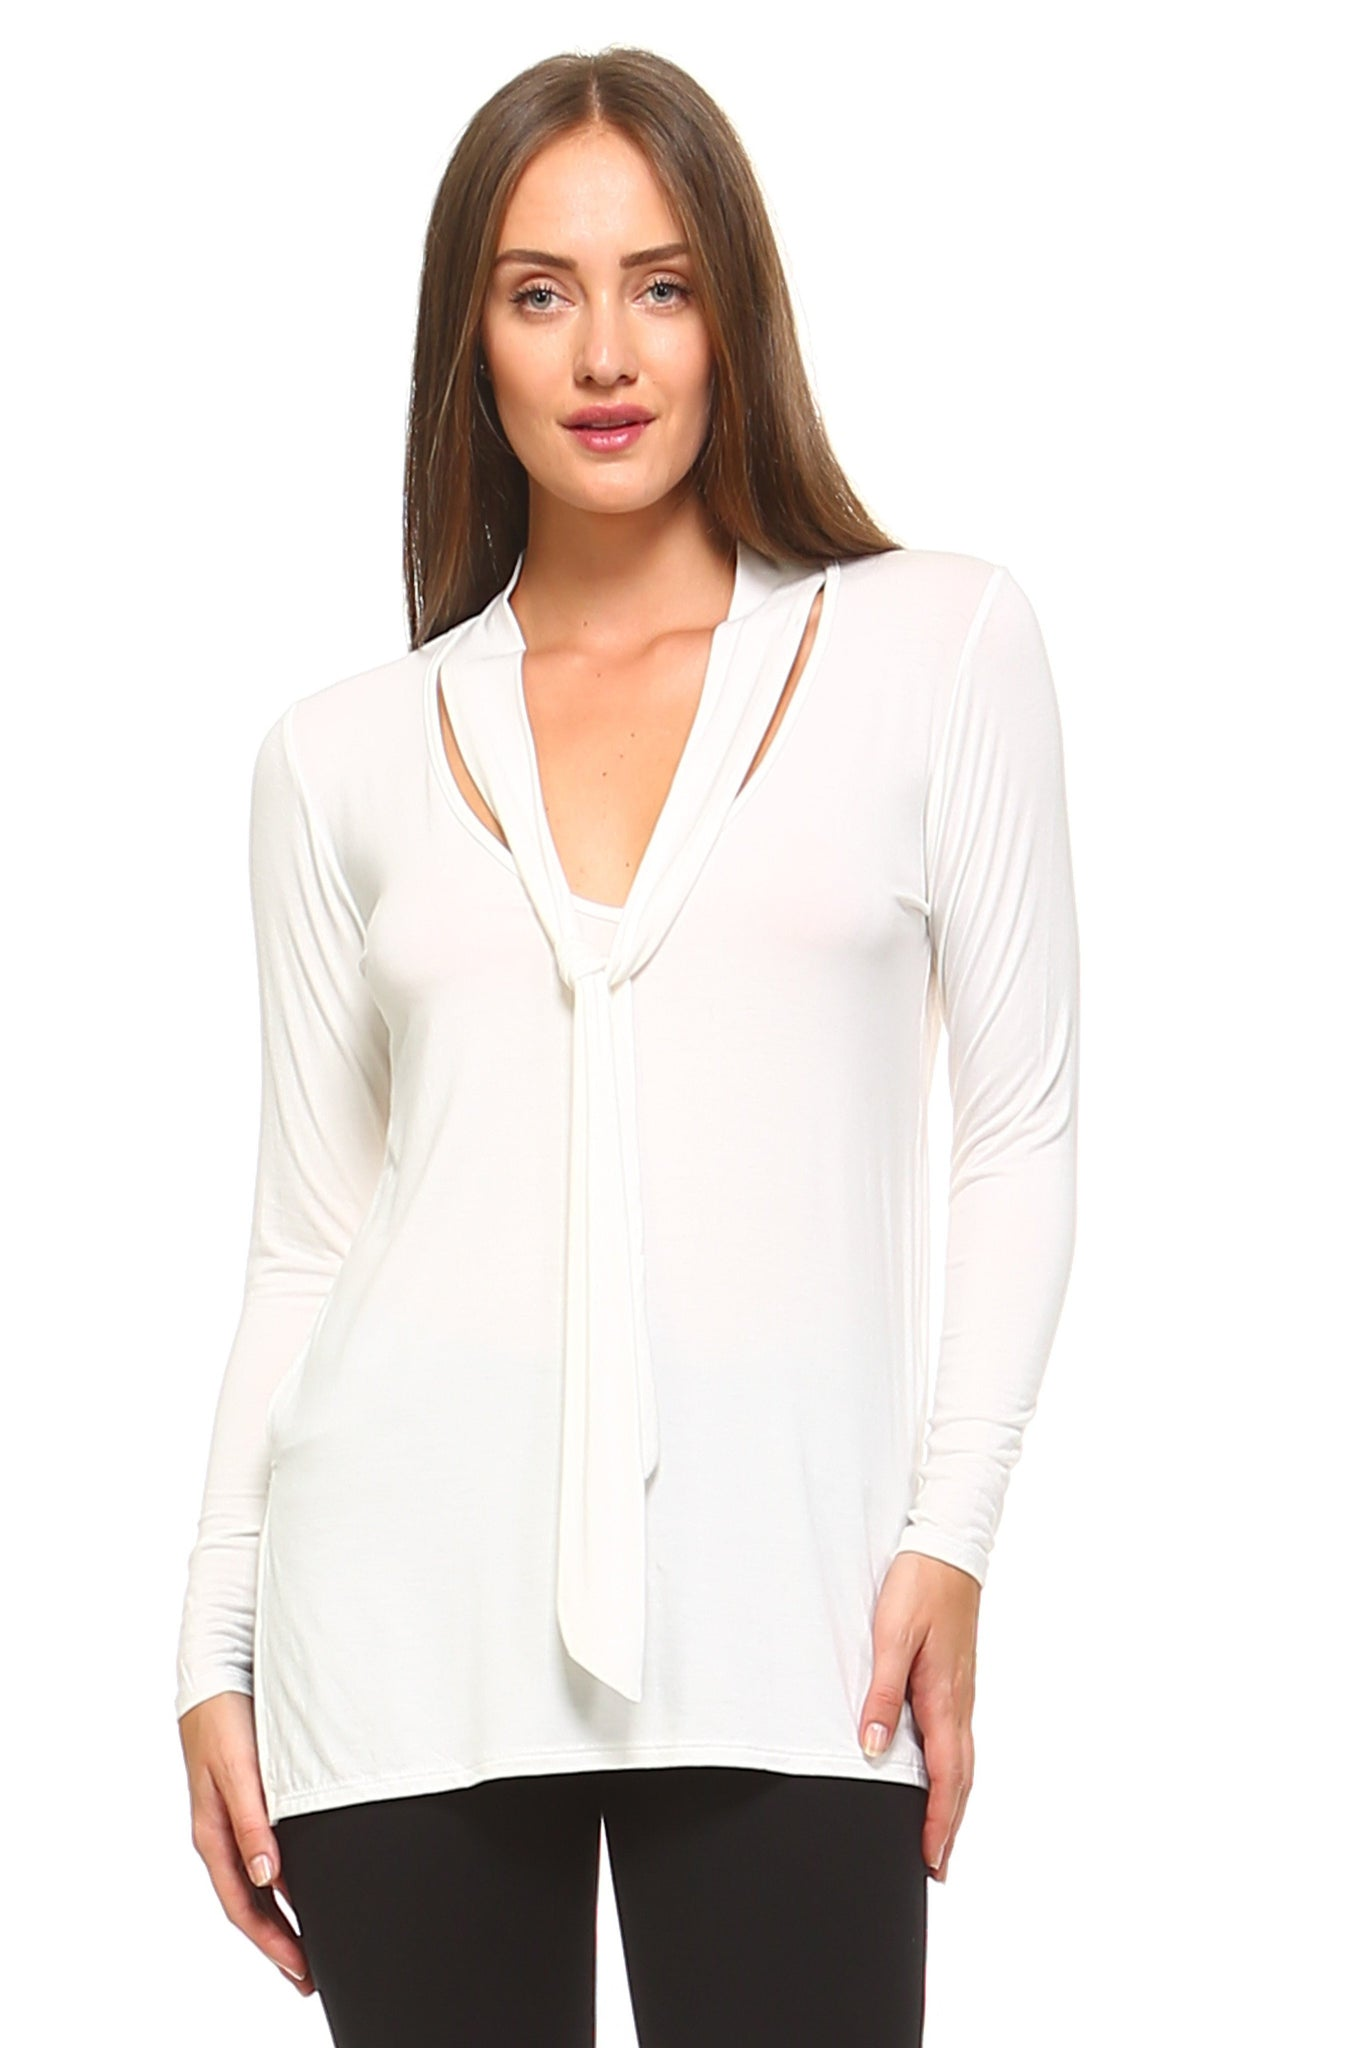 Women's Long Sleeve V-Neck Tie Top